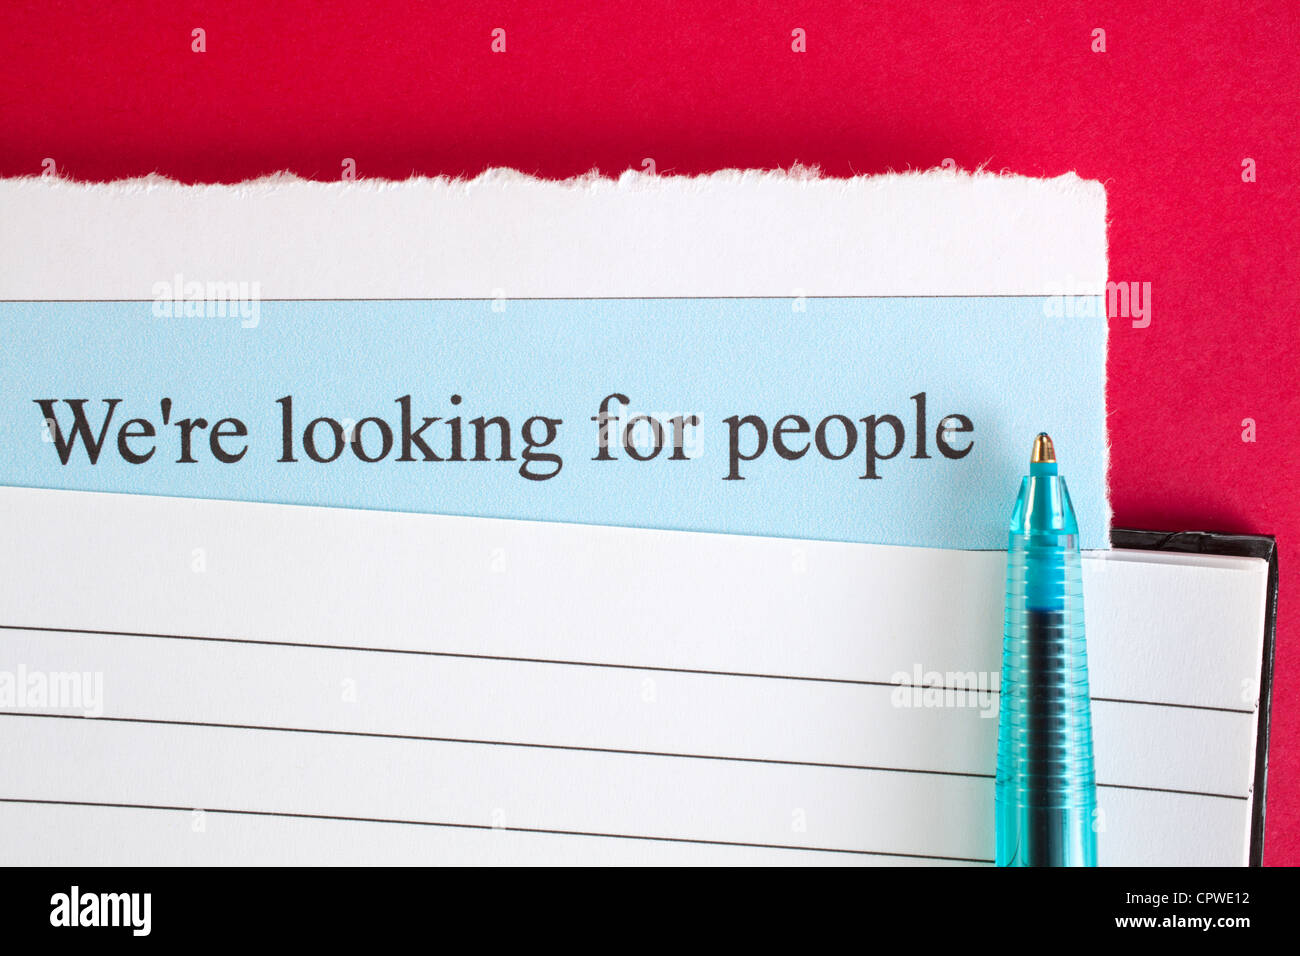 We're looking for people - jobs are becoming more plentiful, so get your CV in order! - Stock Image